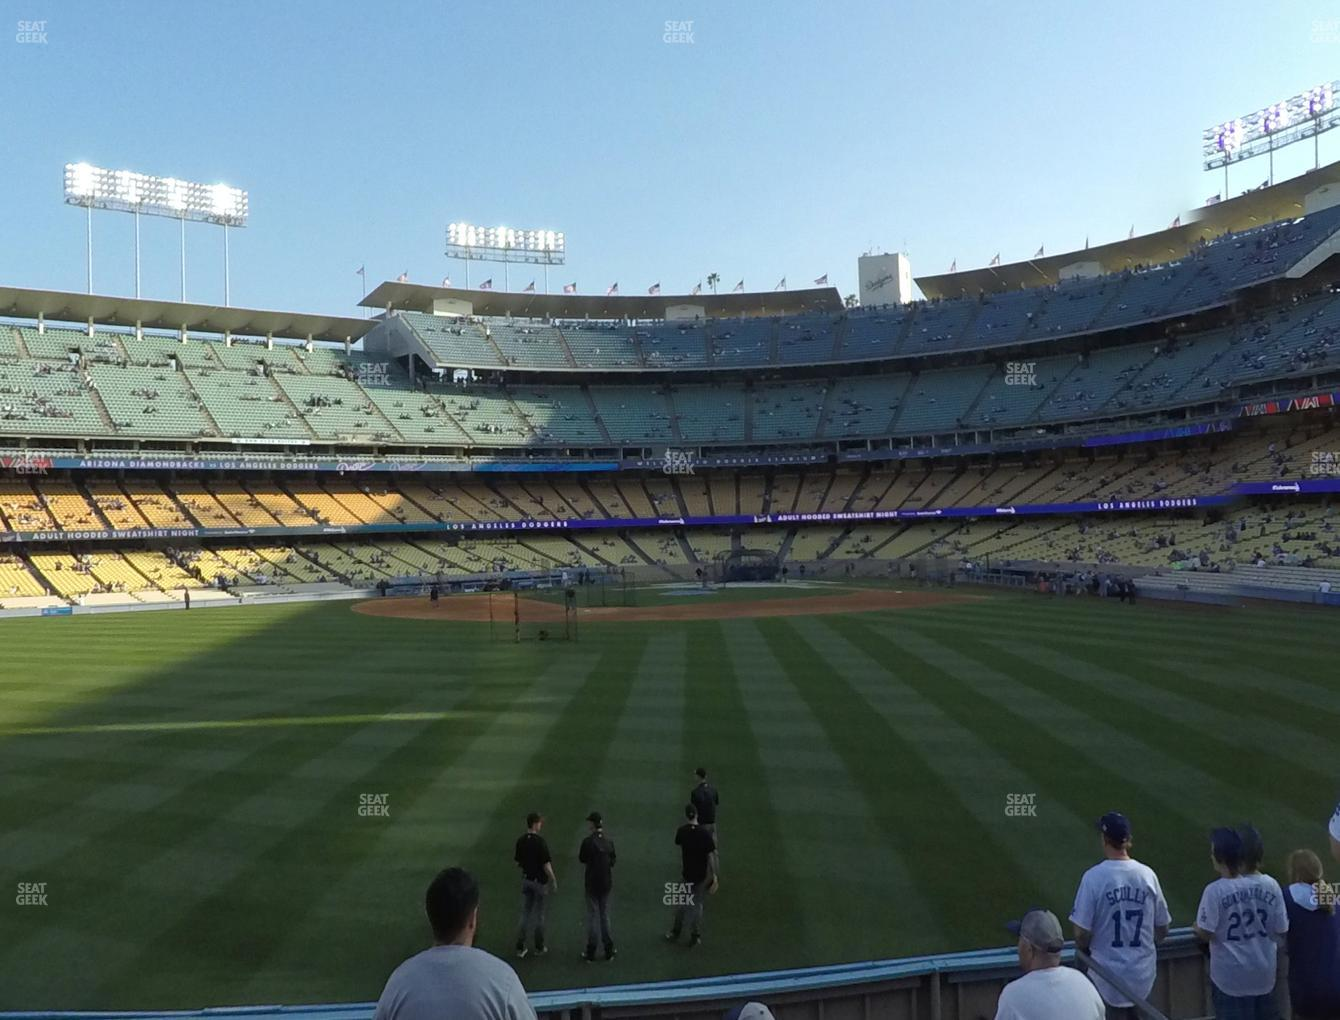 Los Angeles Dodgers at Dodger Stadium Left Field Pavilion 309 View